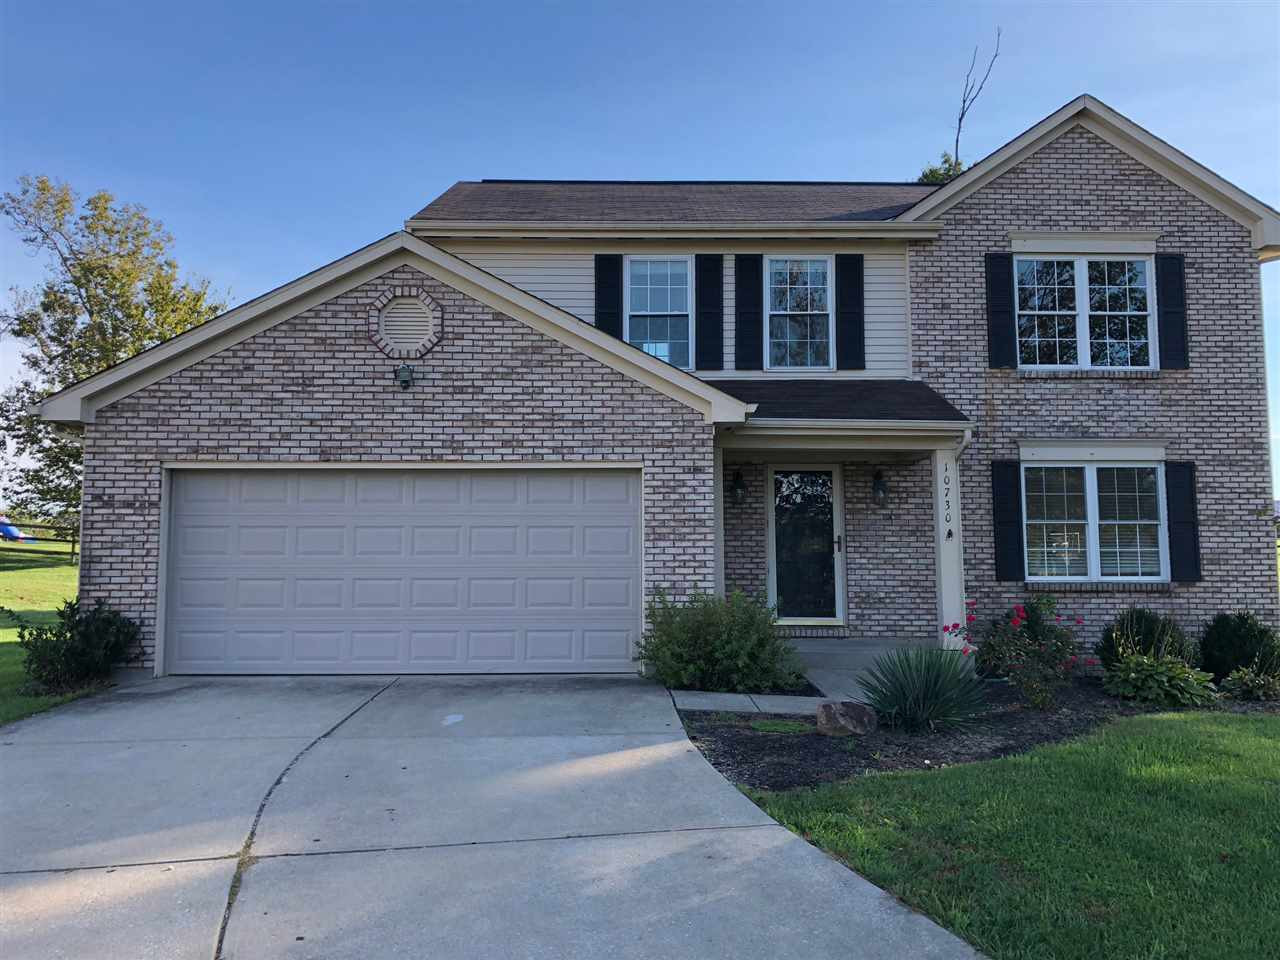 Photo 1 for 10730 Cypresswood Independence, KY 41051